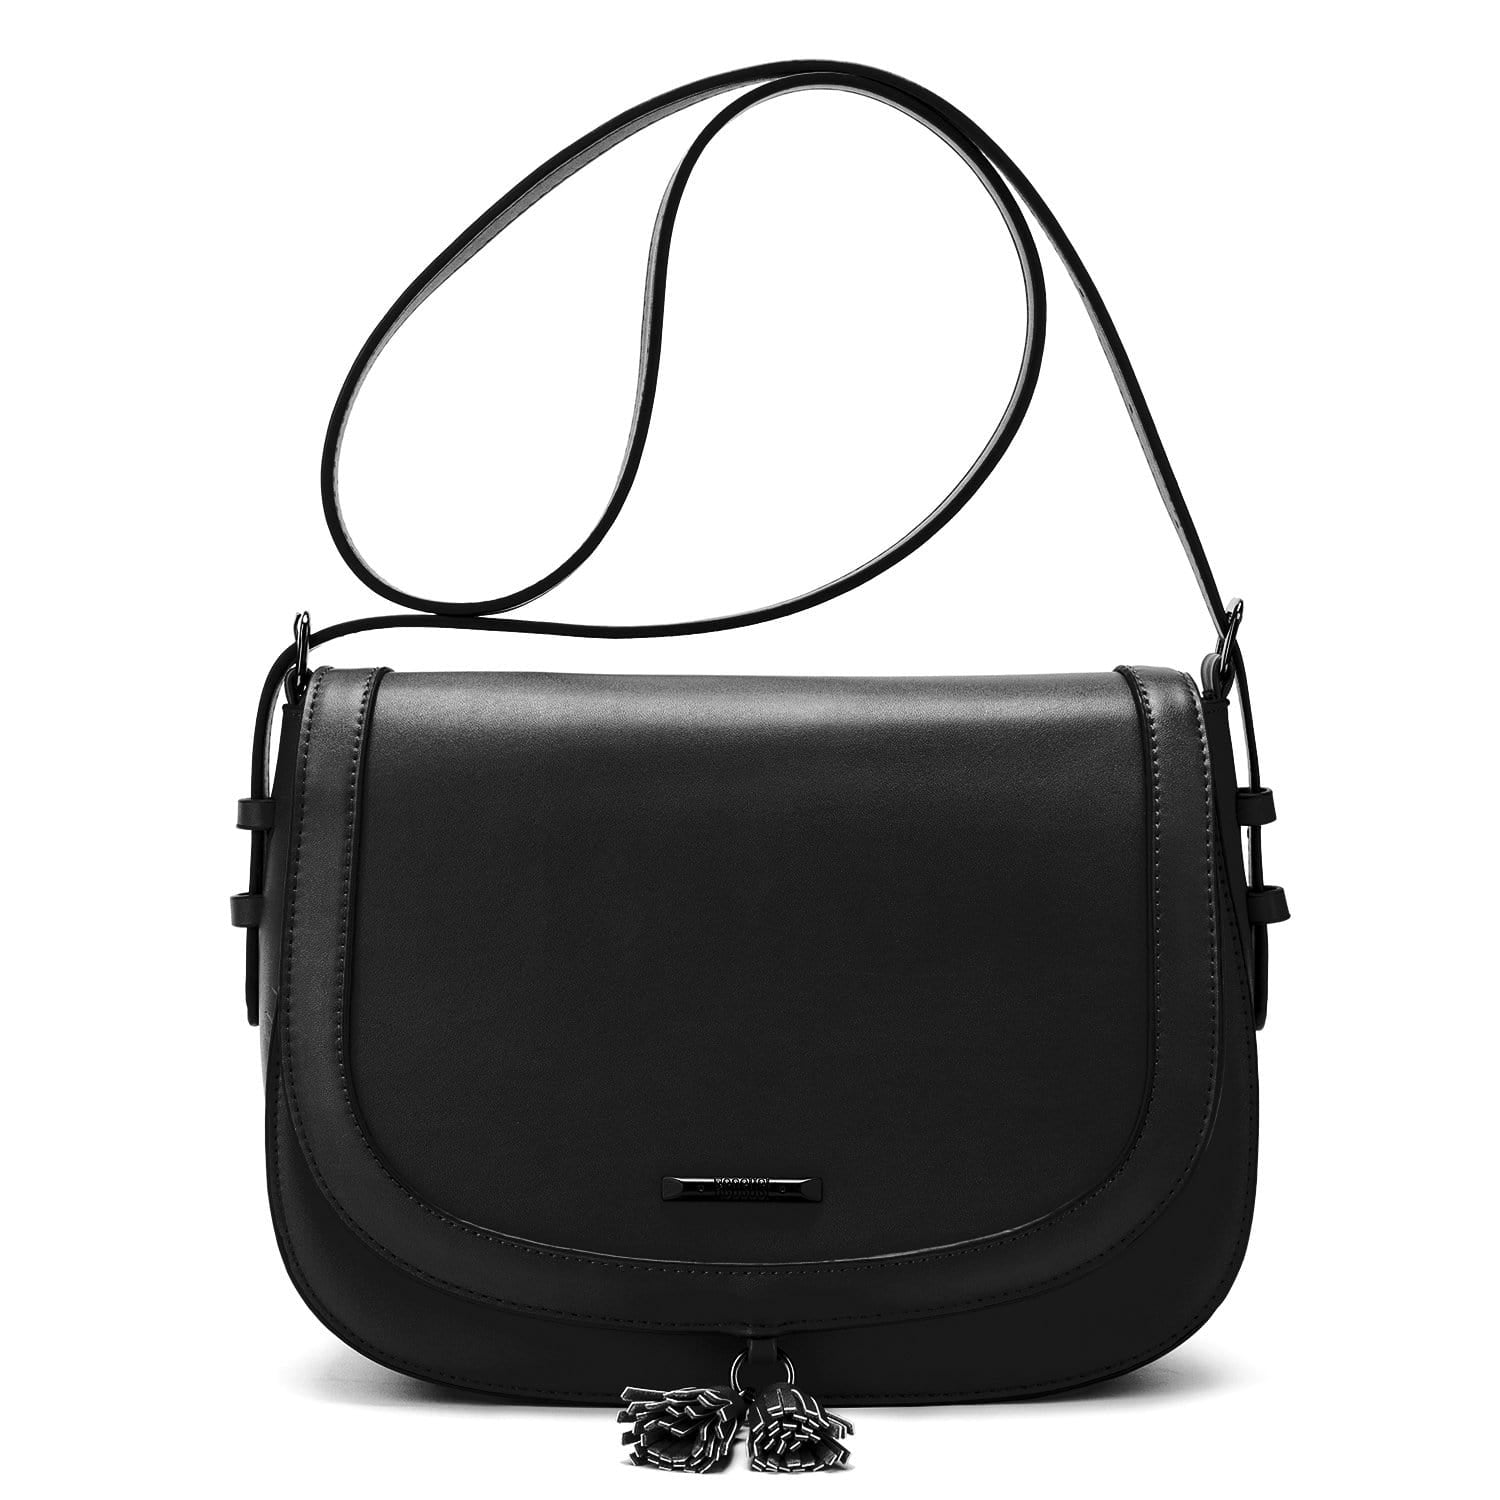 e366366e6f4f Women s Saddle Bag Purses Crossbody Shoulder Bag with Flap Top   Tassel  Satchel for 9.7 inch